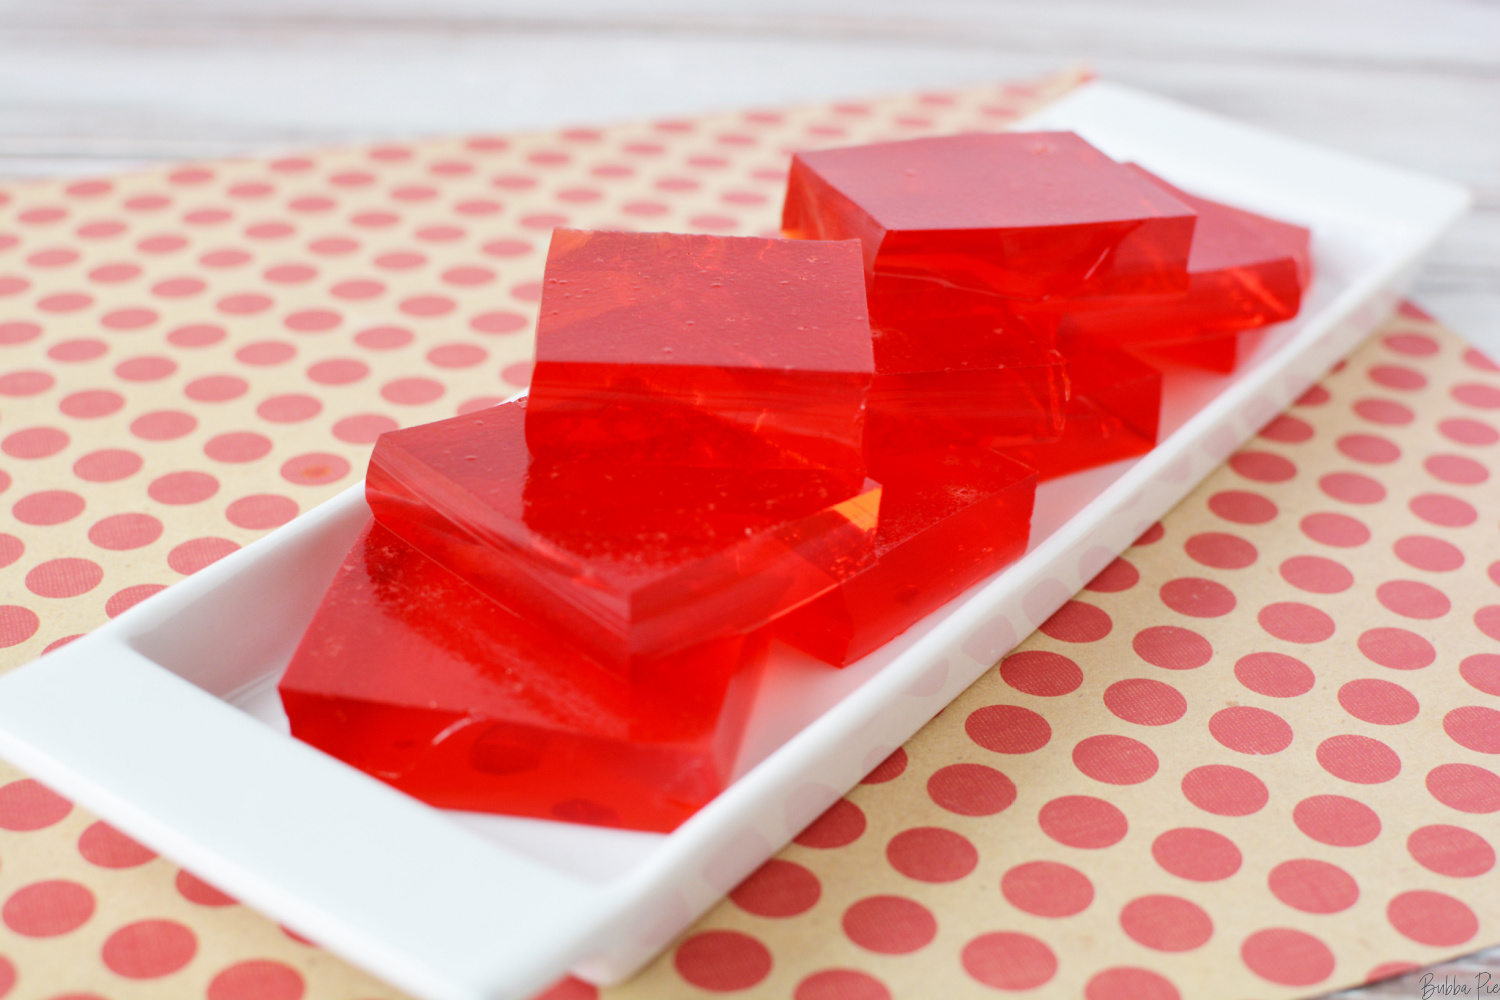 Finger Jello being served on a white plate